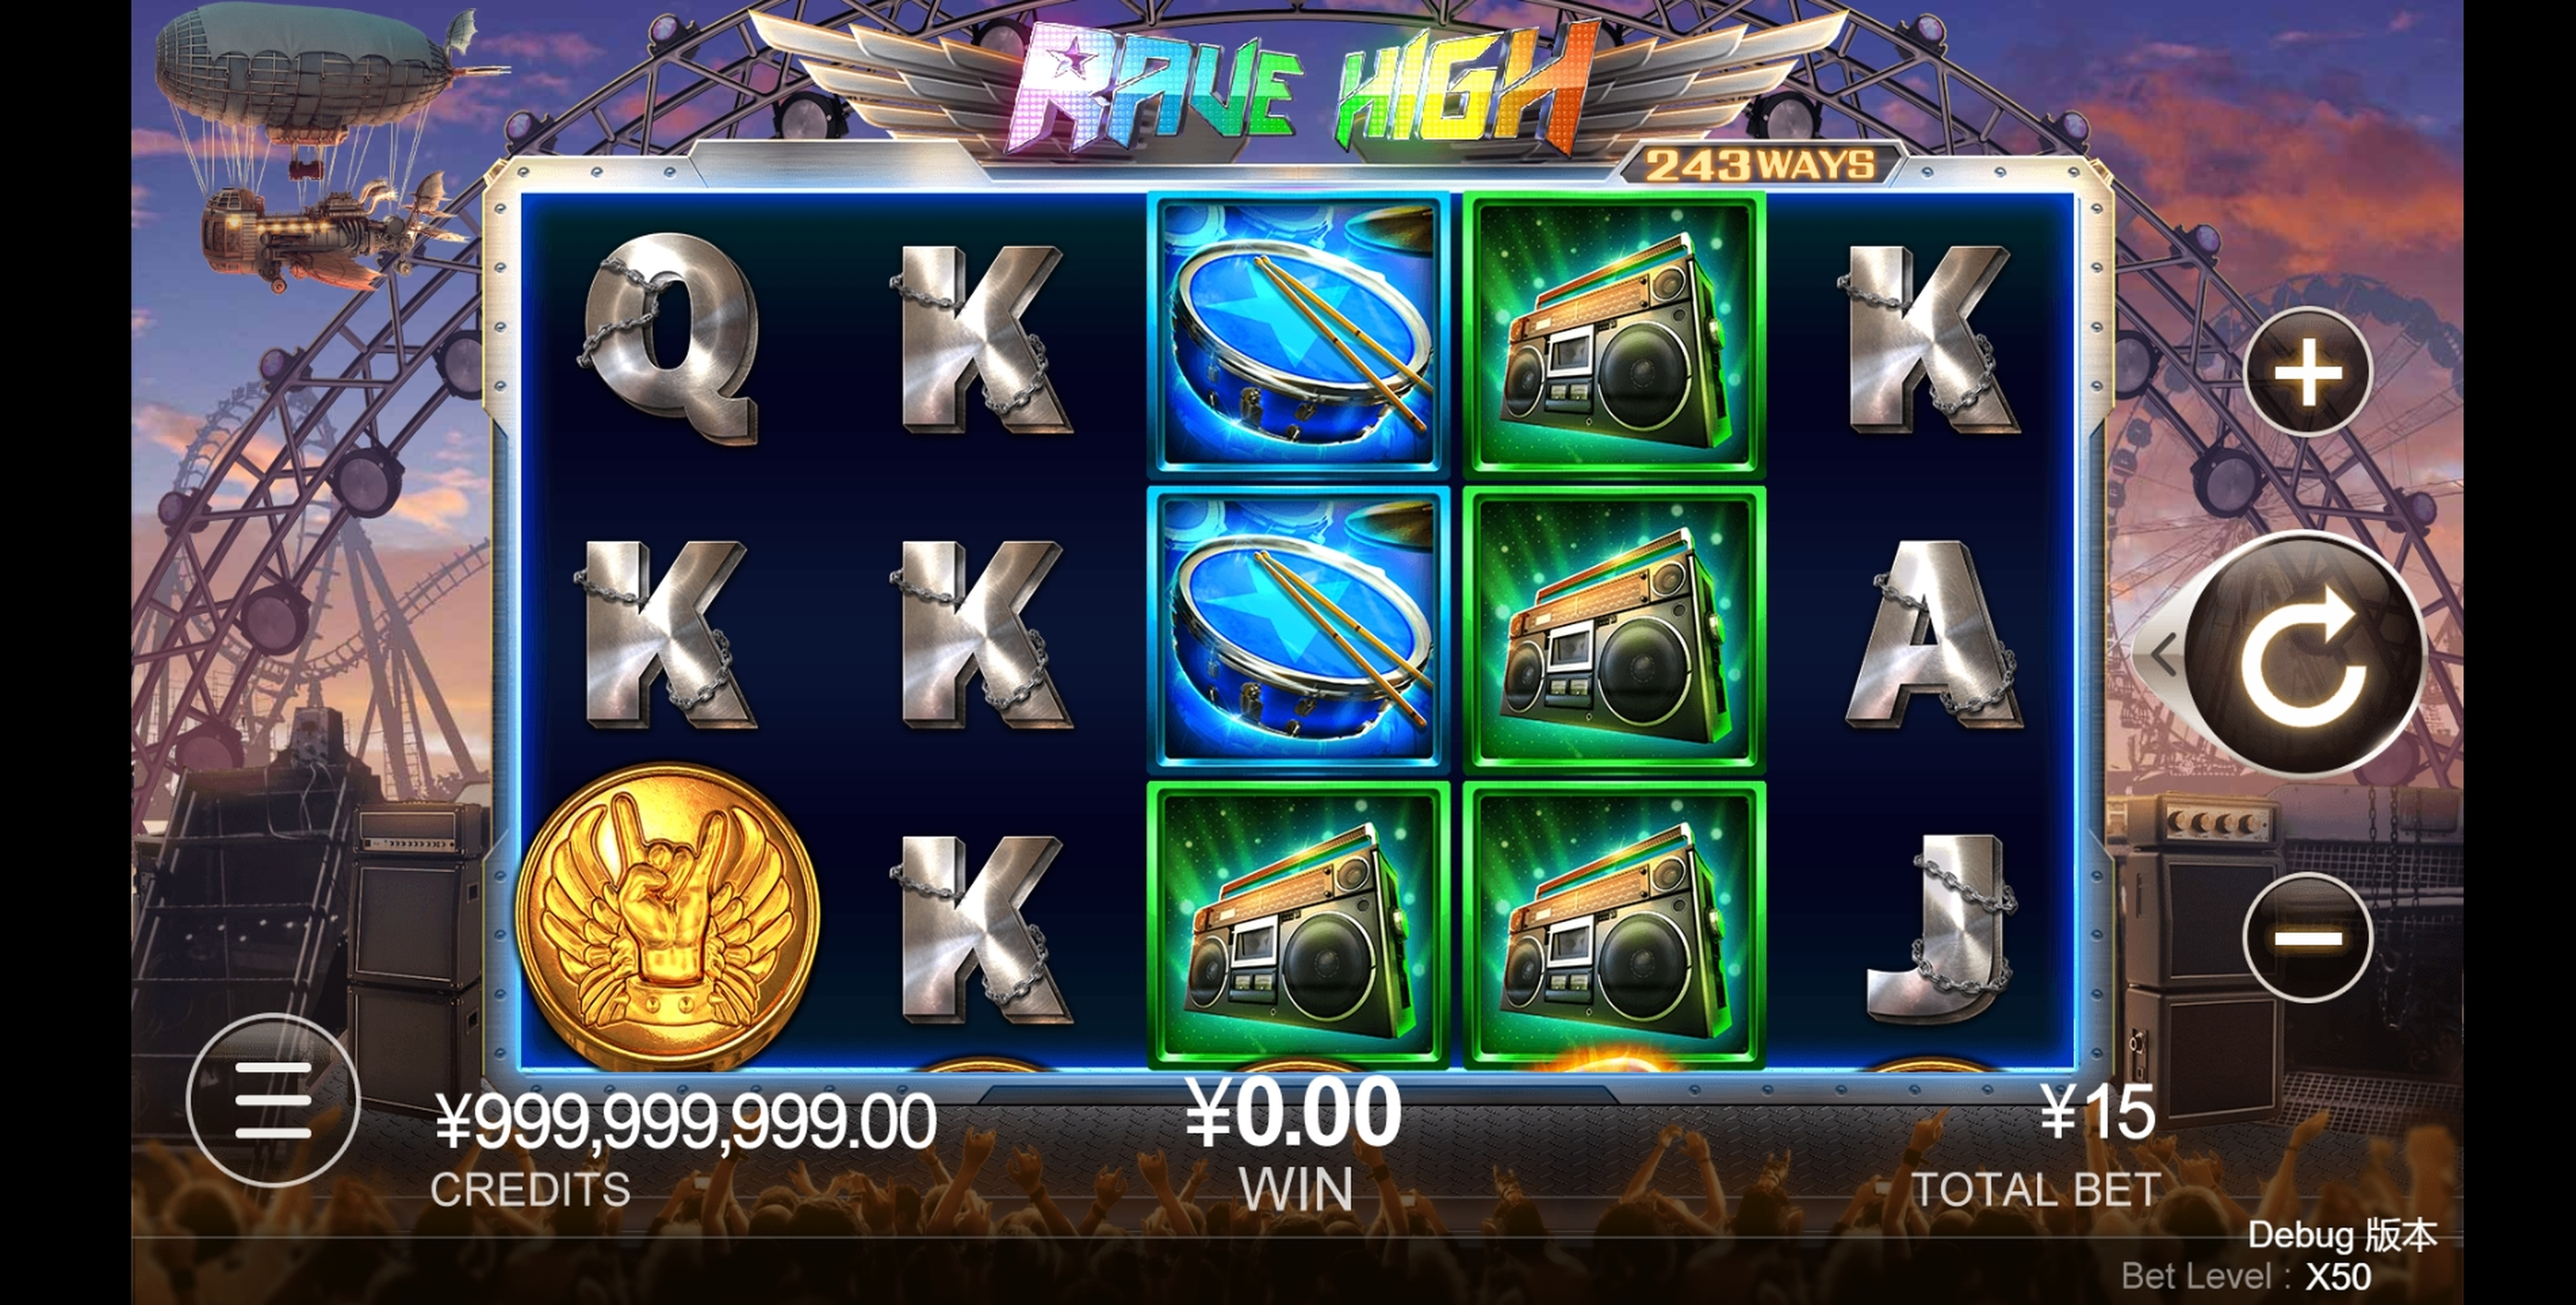 Reels in Rave High Slot Game by CQ9Gaming